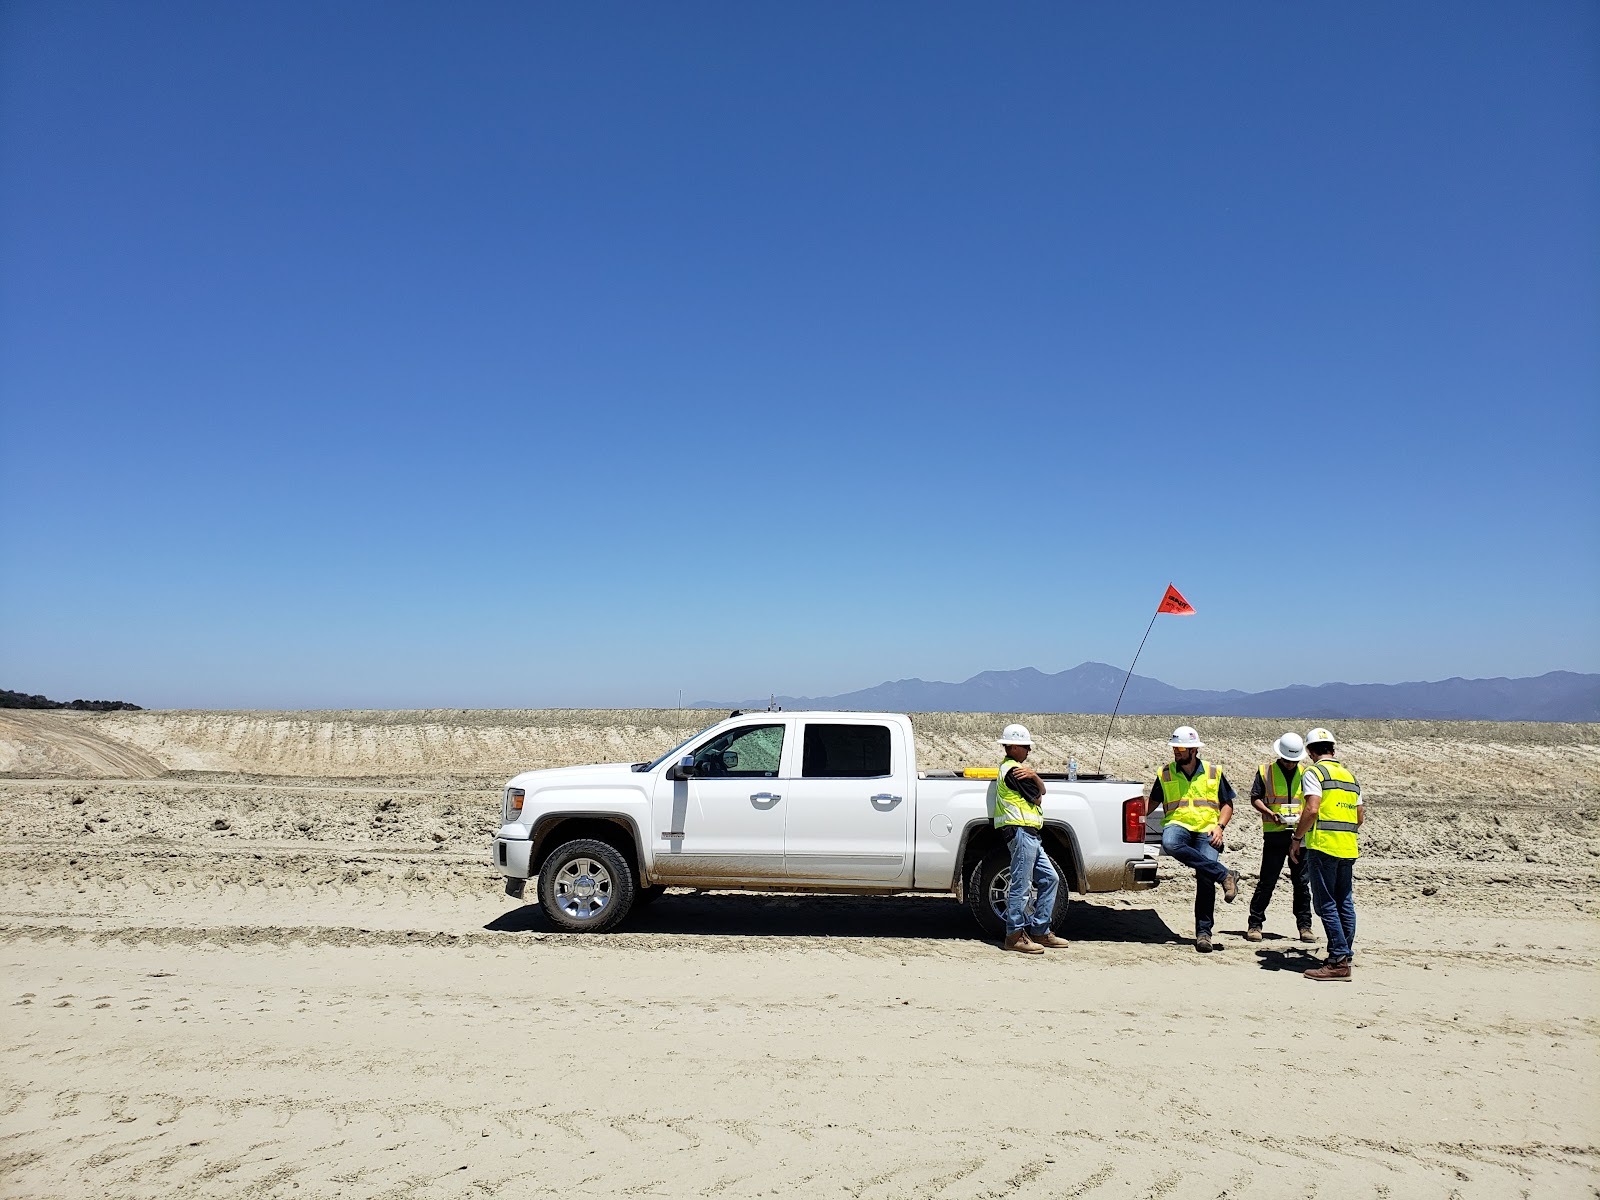 Construction industry workers out on site with white pickup truck